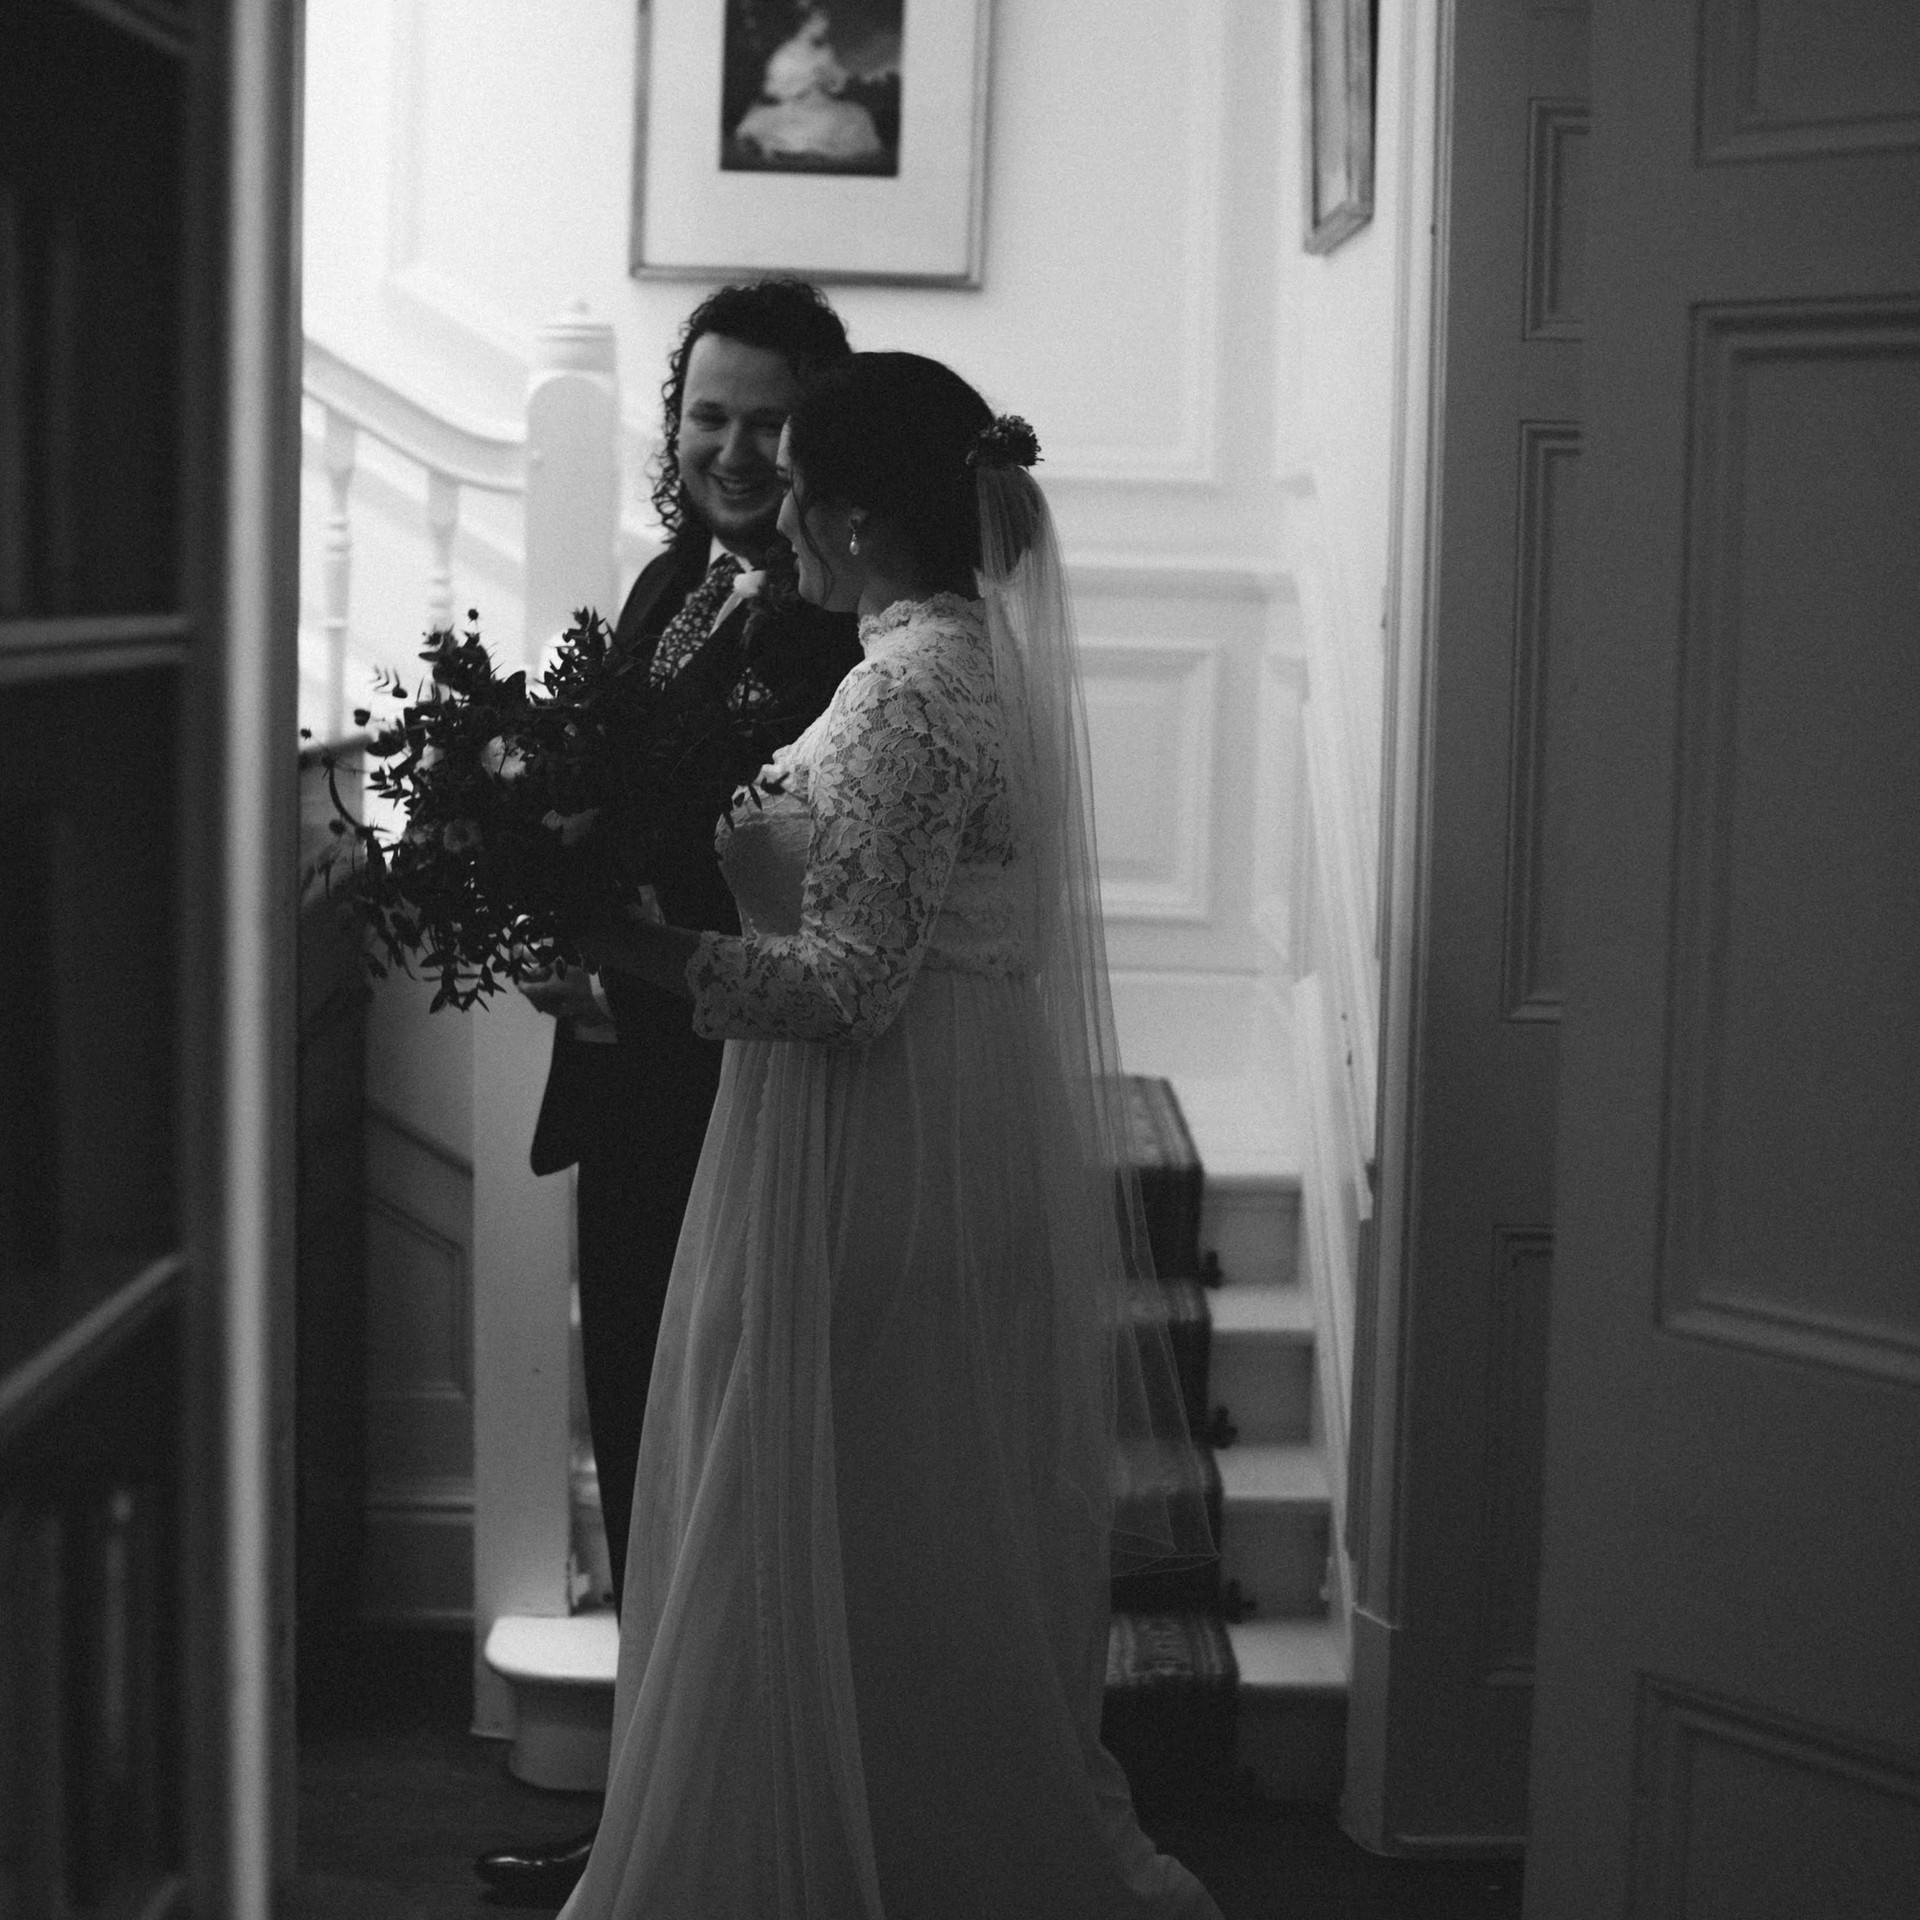 Winter wedding by the sea at Porthpean House